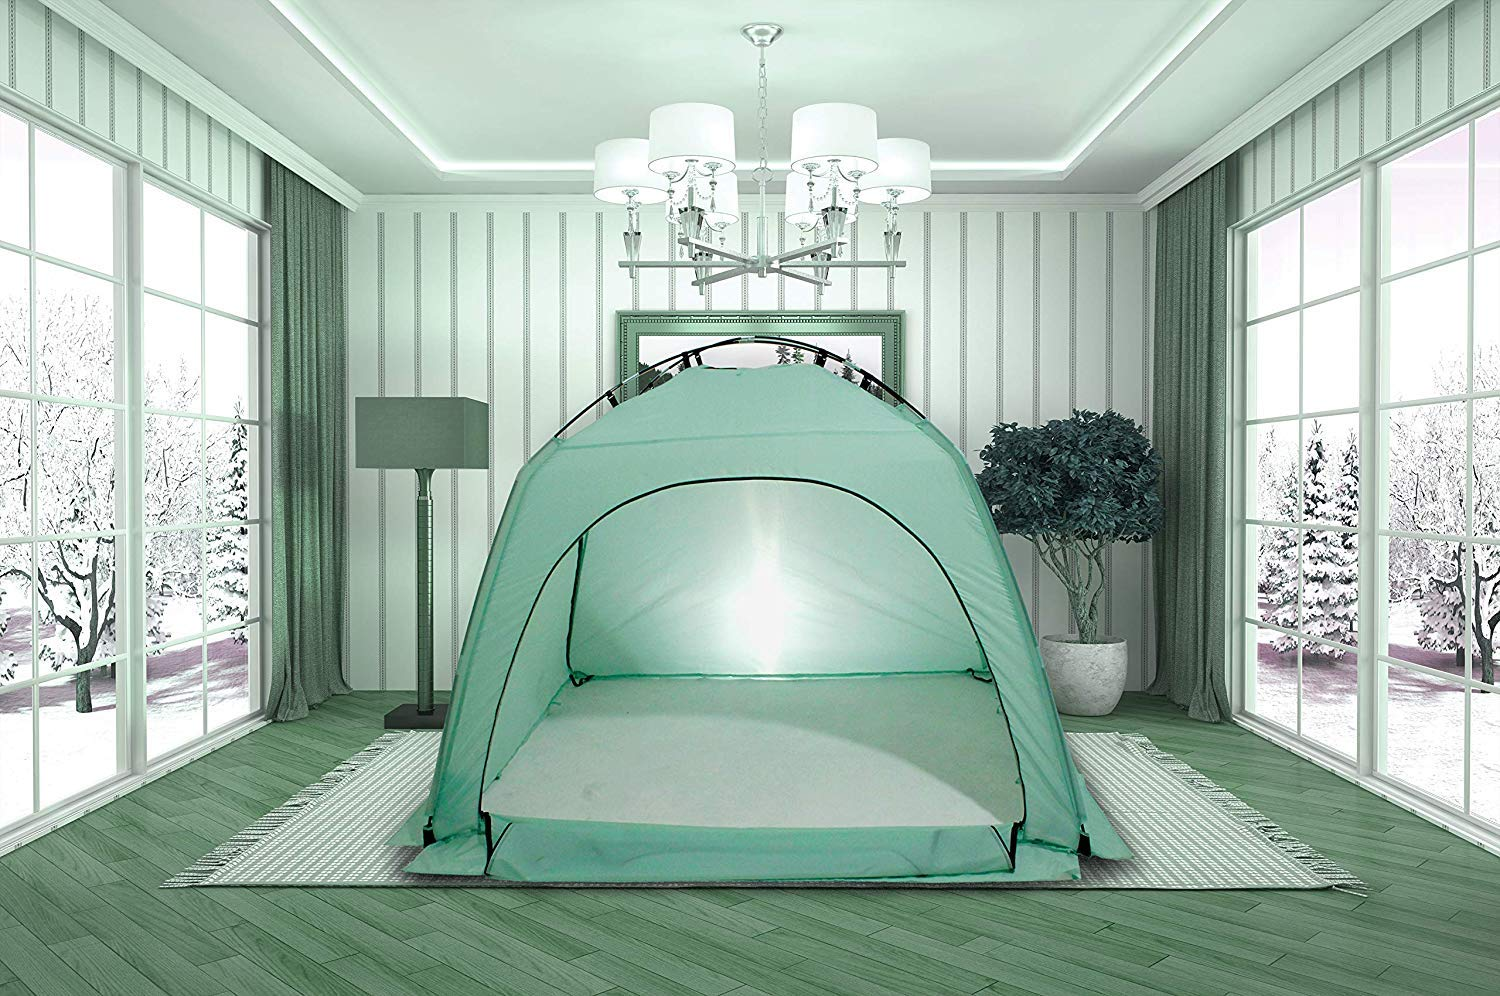 Miyaya Indoor Privacy Play Tent on Bed,Warm and Cozy Sleep BedTent (Light Blue Bed Tent)